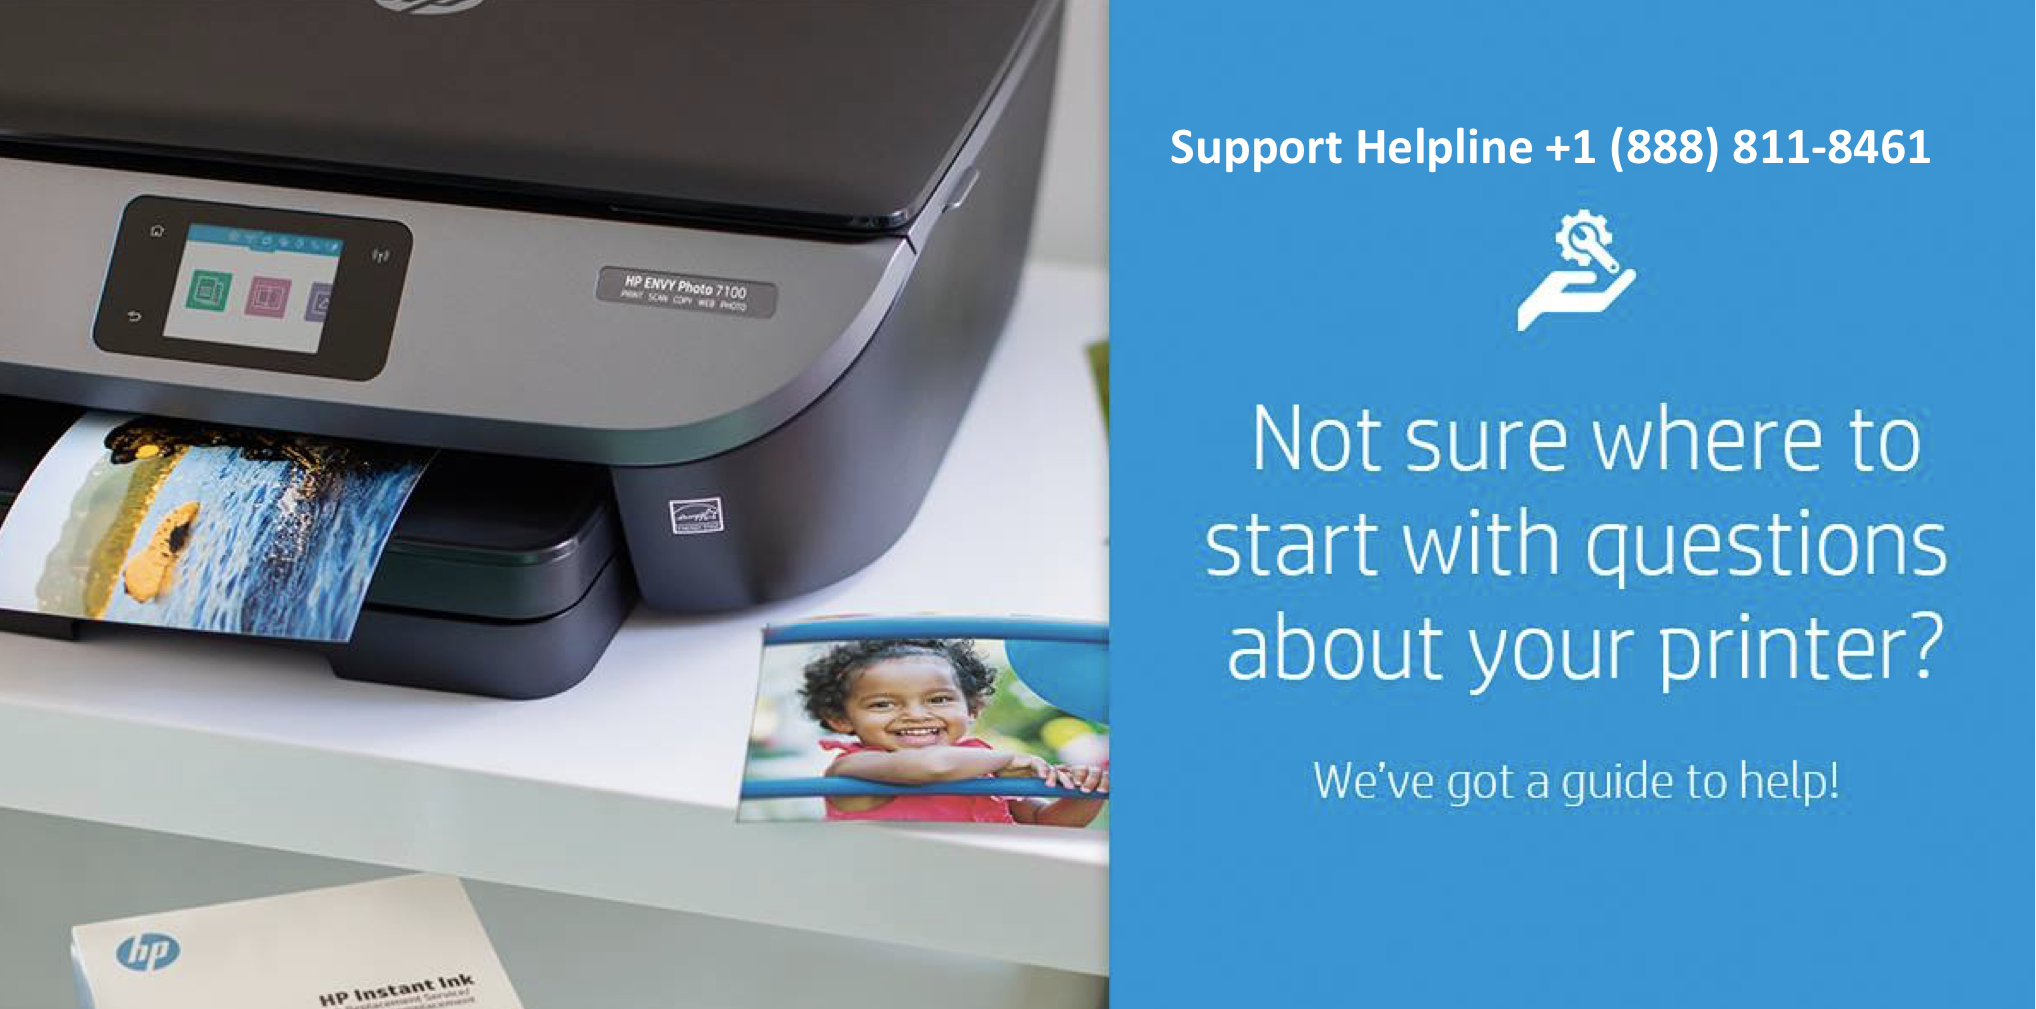 Hp Printer Support Number image 1